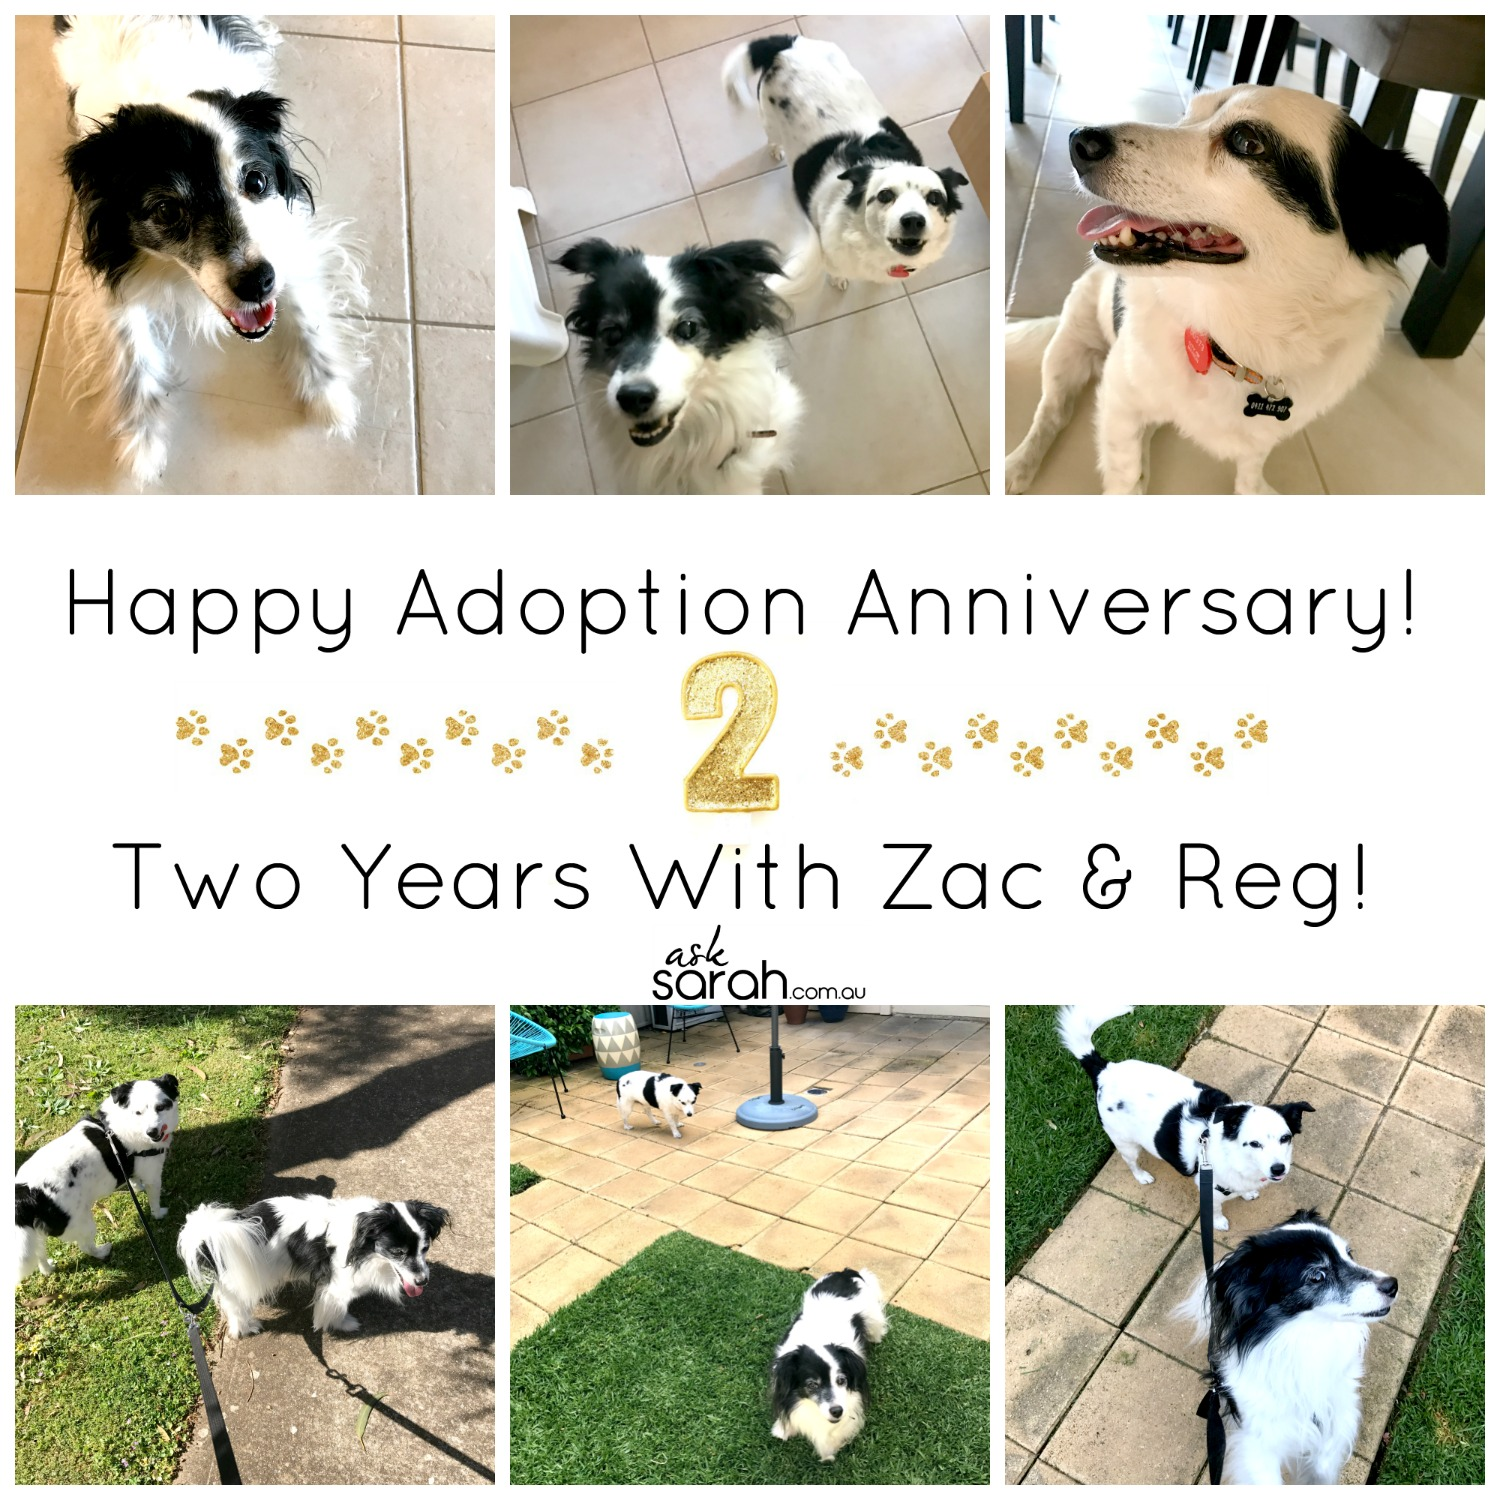 Happy Adoption Anniversary! Two Years With Zac & Reg!